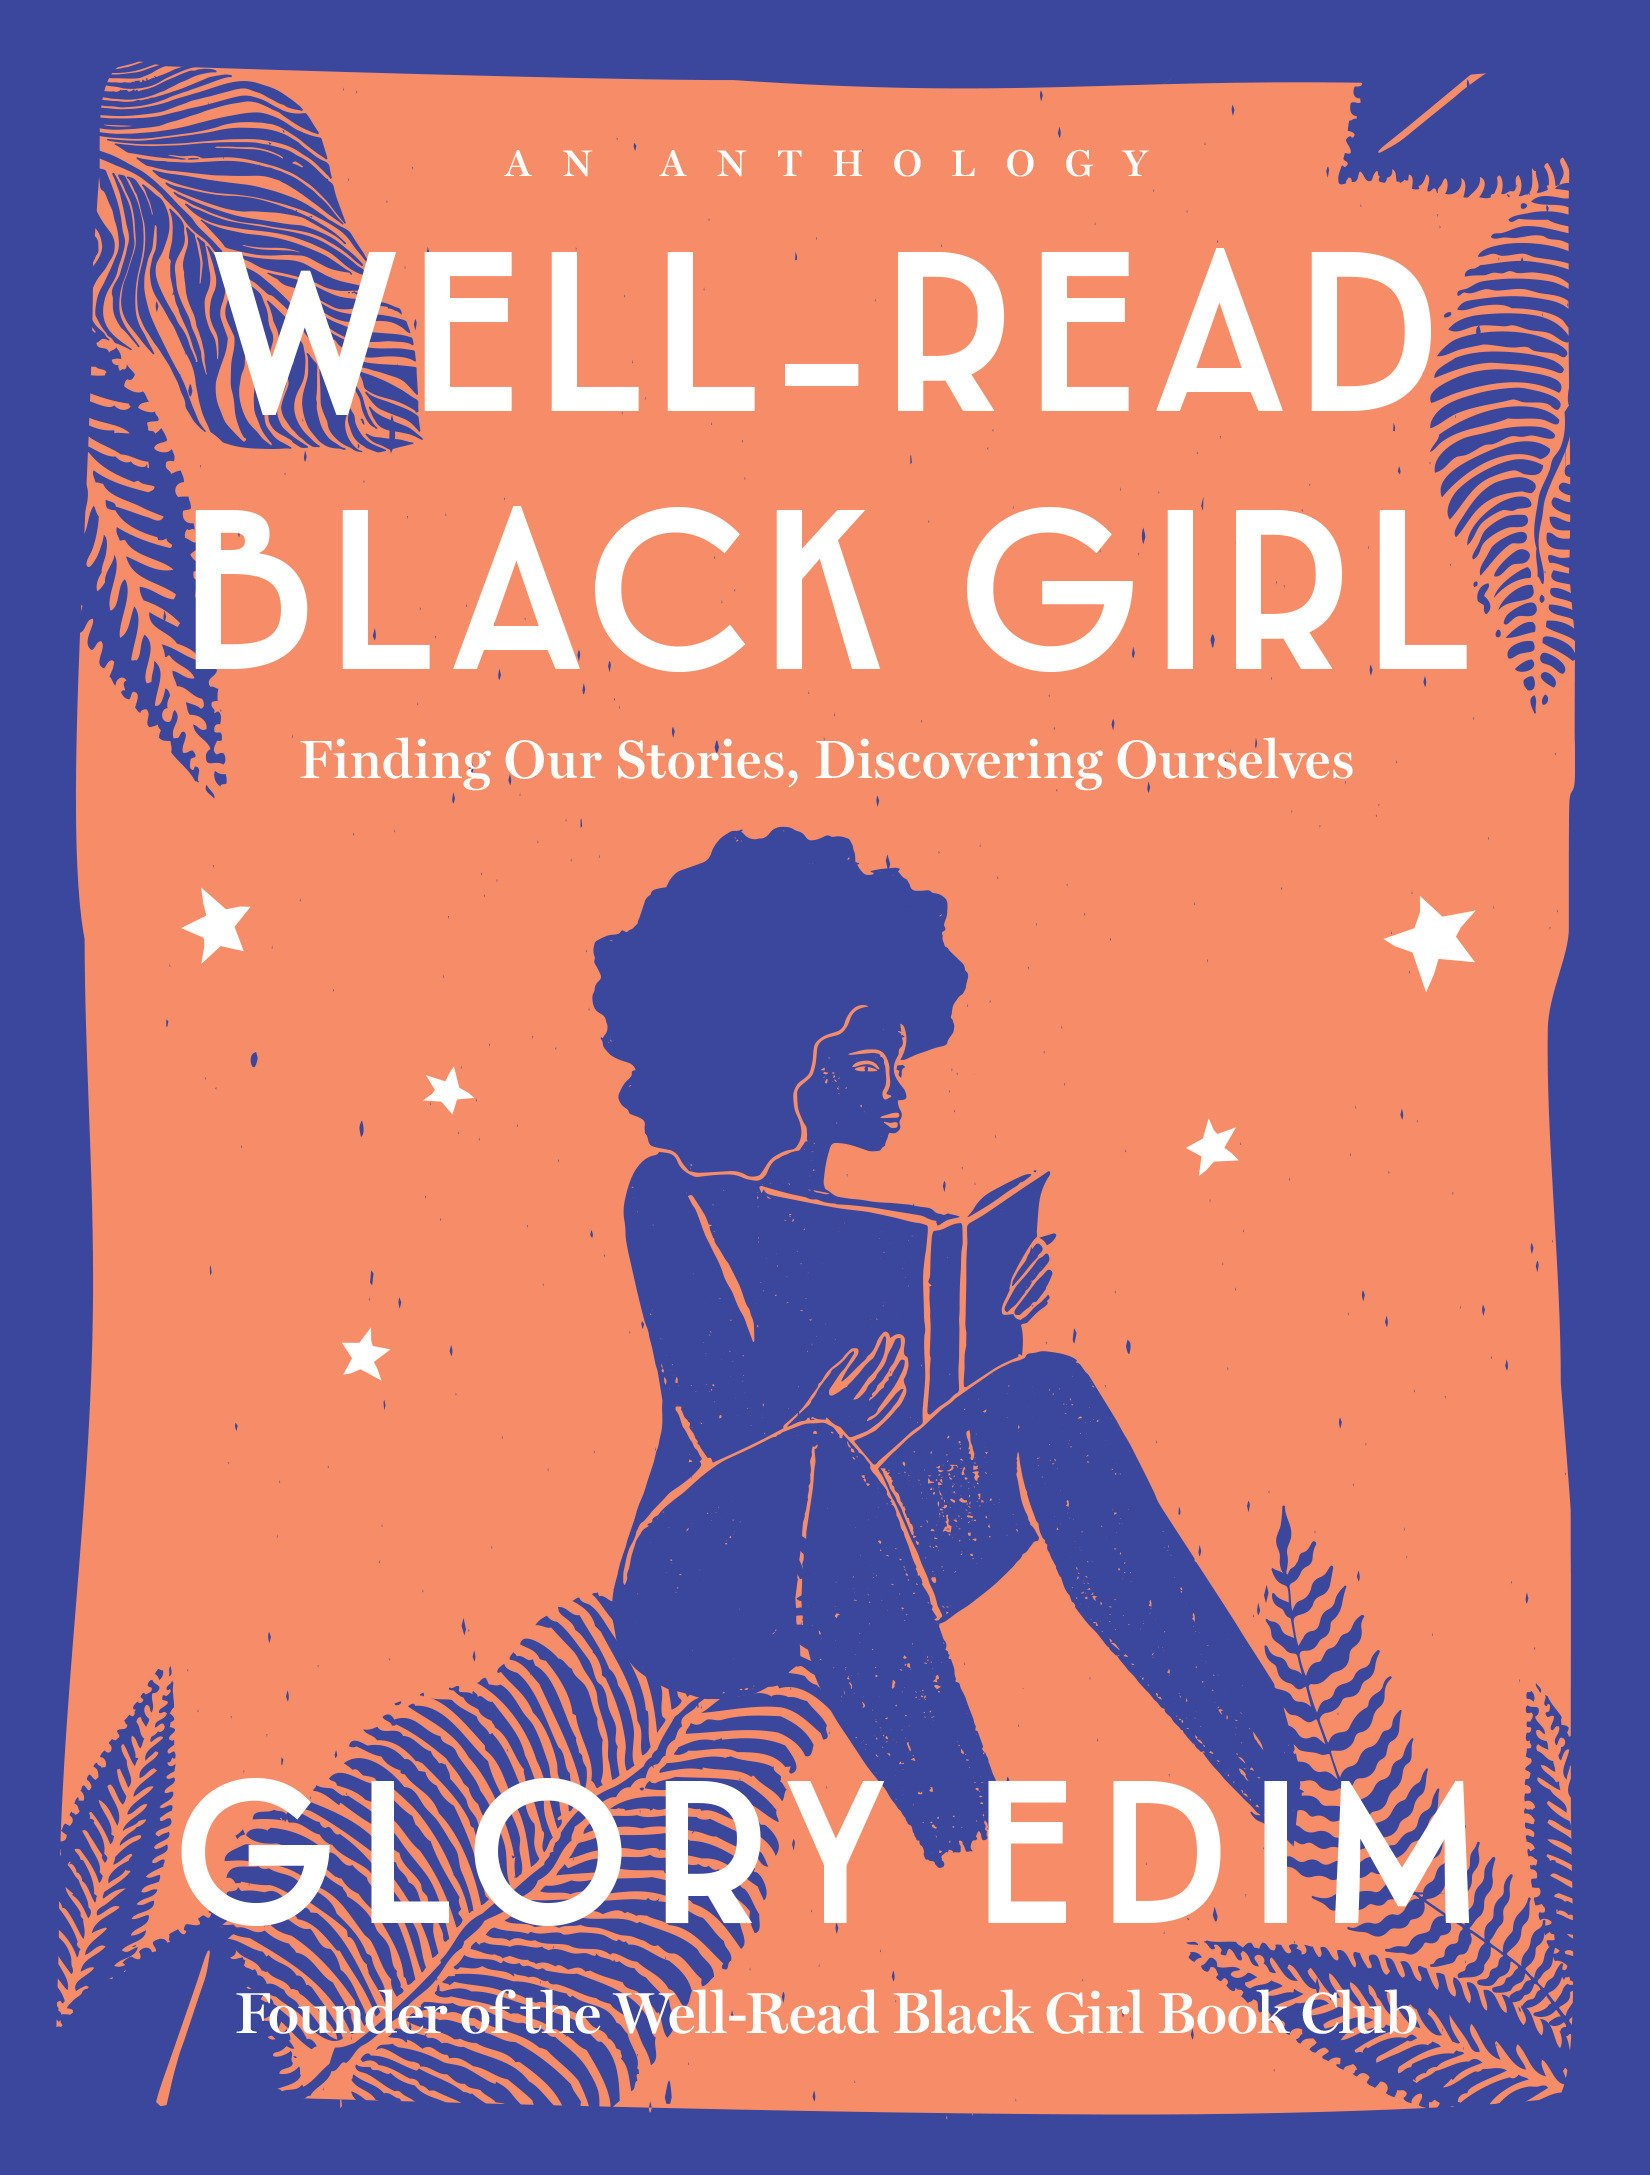 Well-Read Black Girl- Finding Our Stories, Discovering Ourselves by Glory Edim.jpg